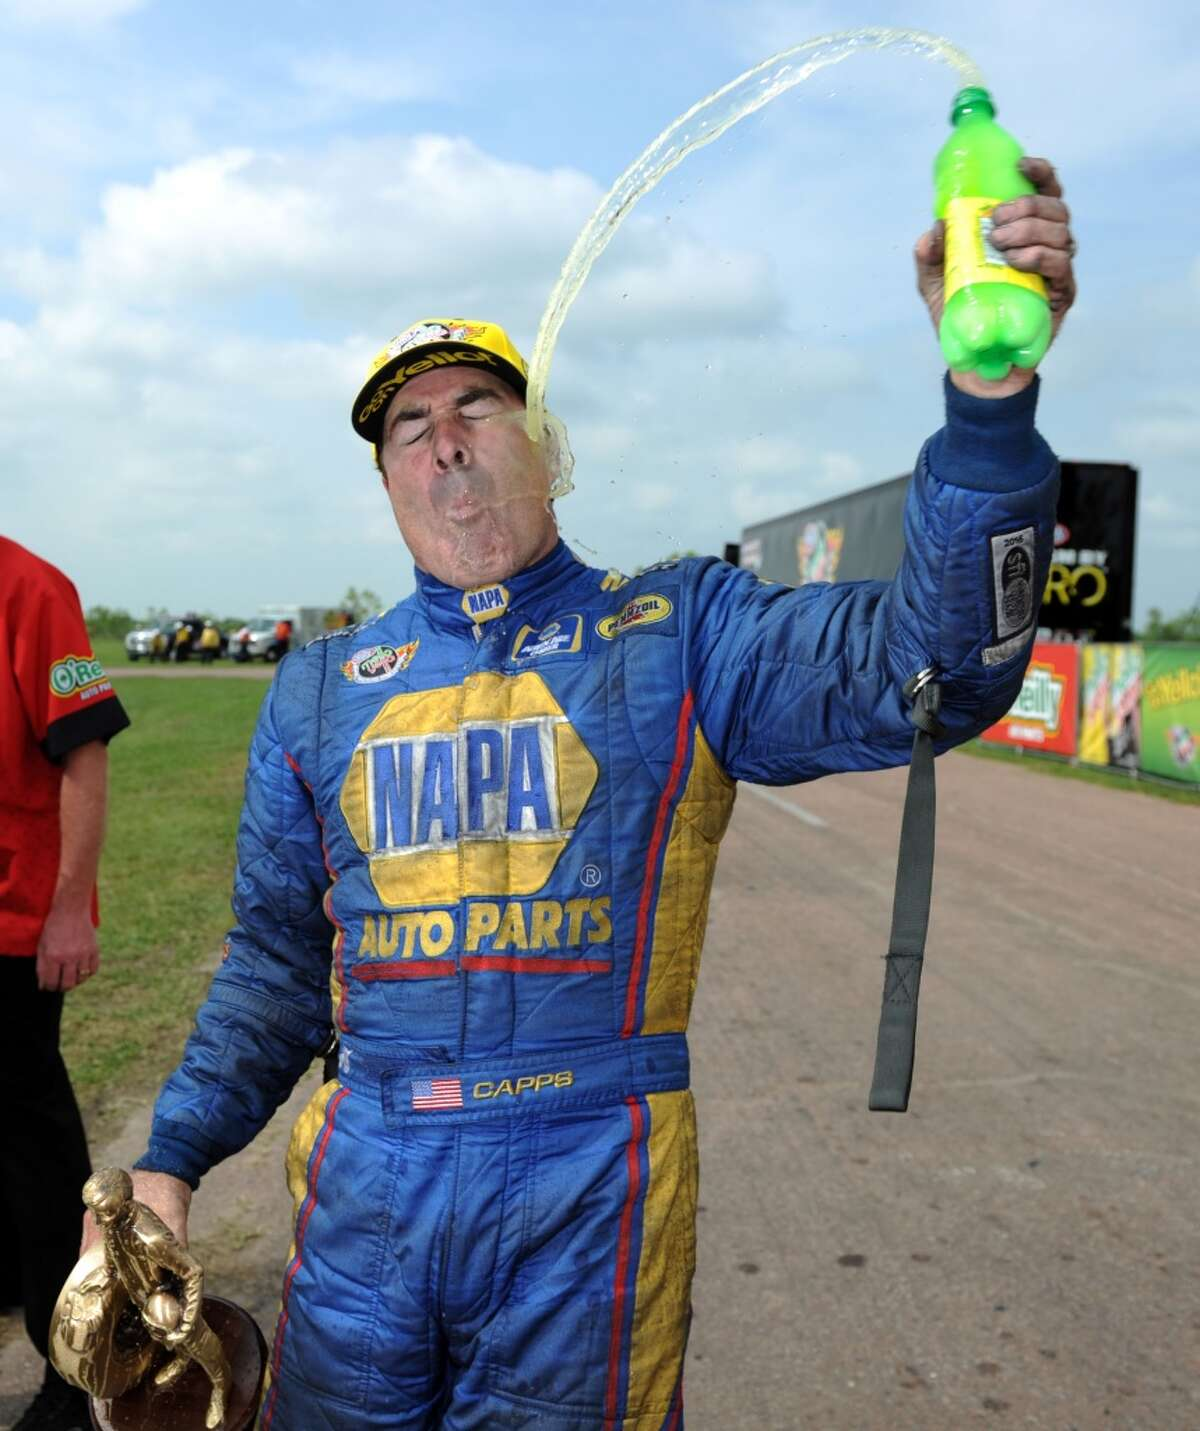 Ron Capps celebrates his funny car victory in the NHRA O'Reilly Auto Parts Spring Nationals, Sunday, April 26, 2015, at Royal Purple Raceway in Baytown, TX. (Eric Christian Smith/For the Chronicle)